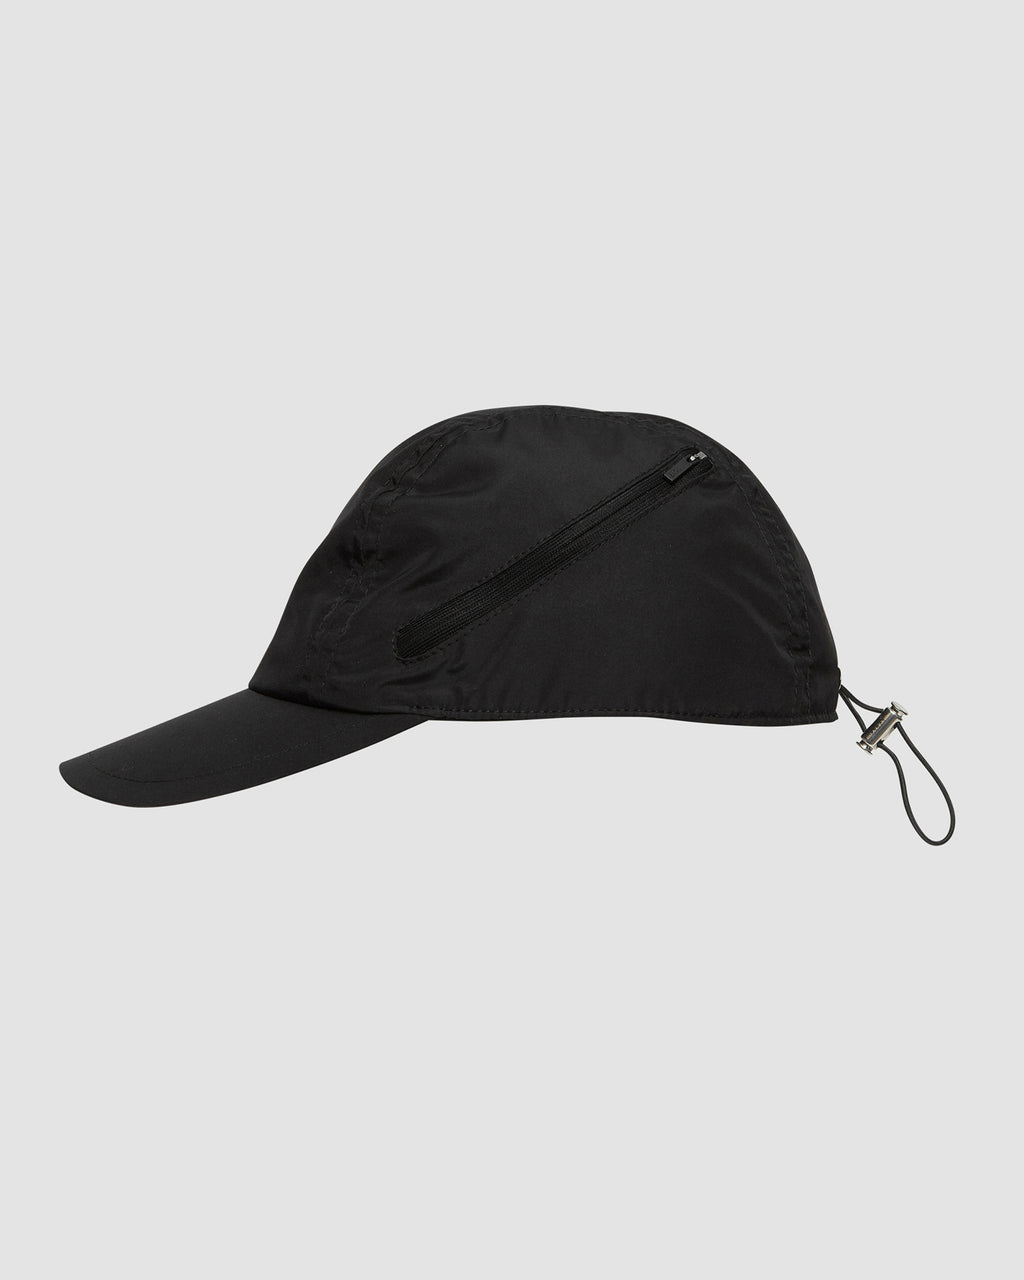 1017 ALYX 9SM | SOFT CLASSIC HAT WITH CURVED ZIP | Hat | BLACK, Google Shopping, Hat, HATS, Man, S20, S20 Drop II, UNISEX, Woman